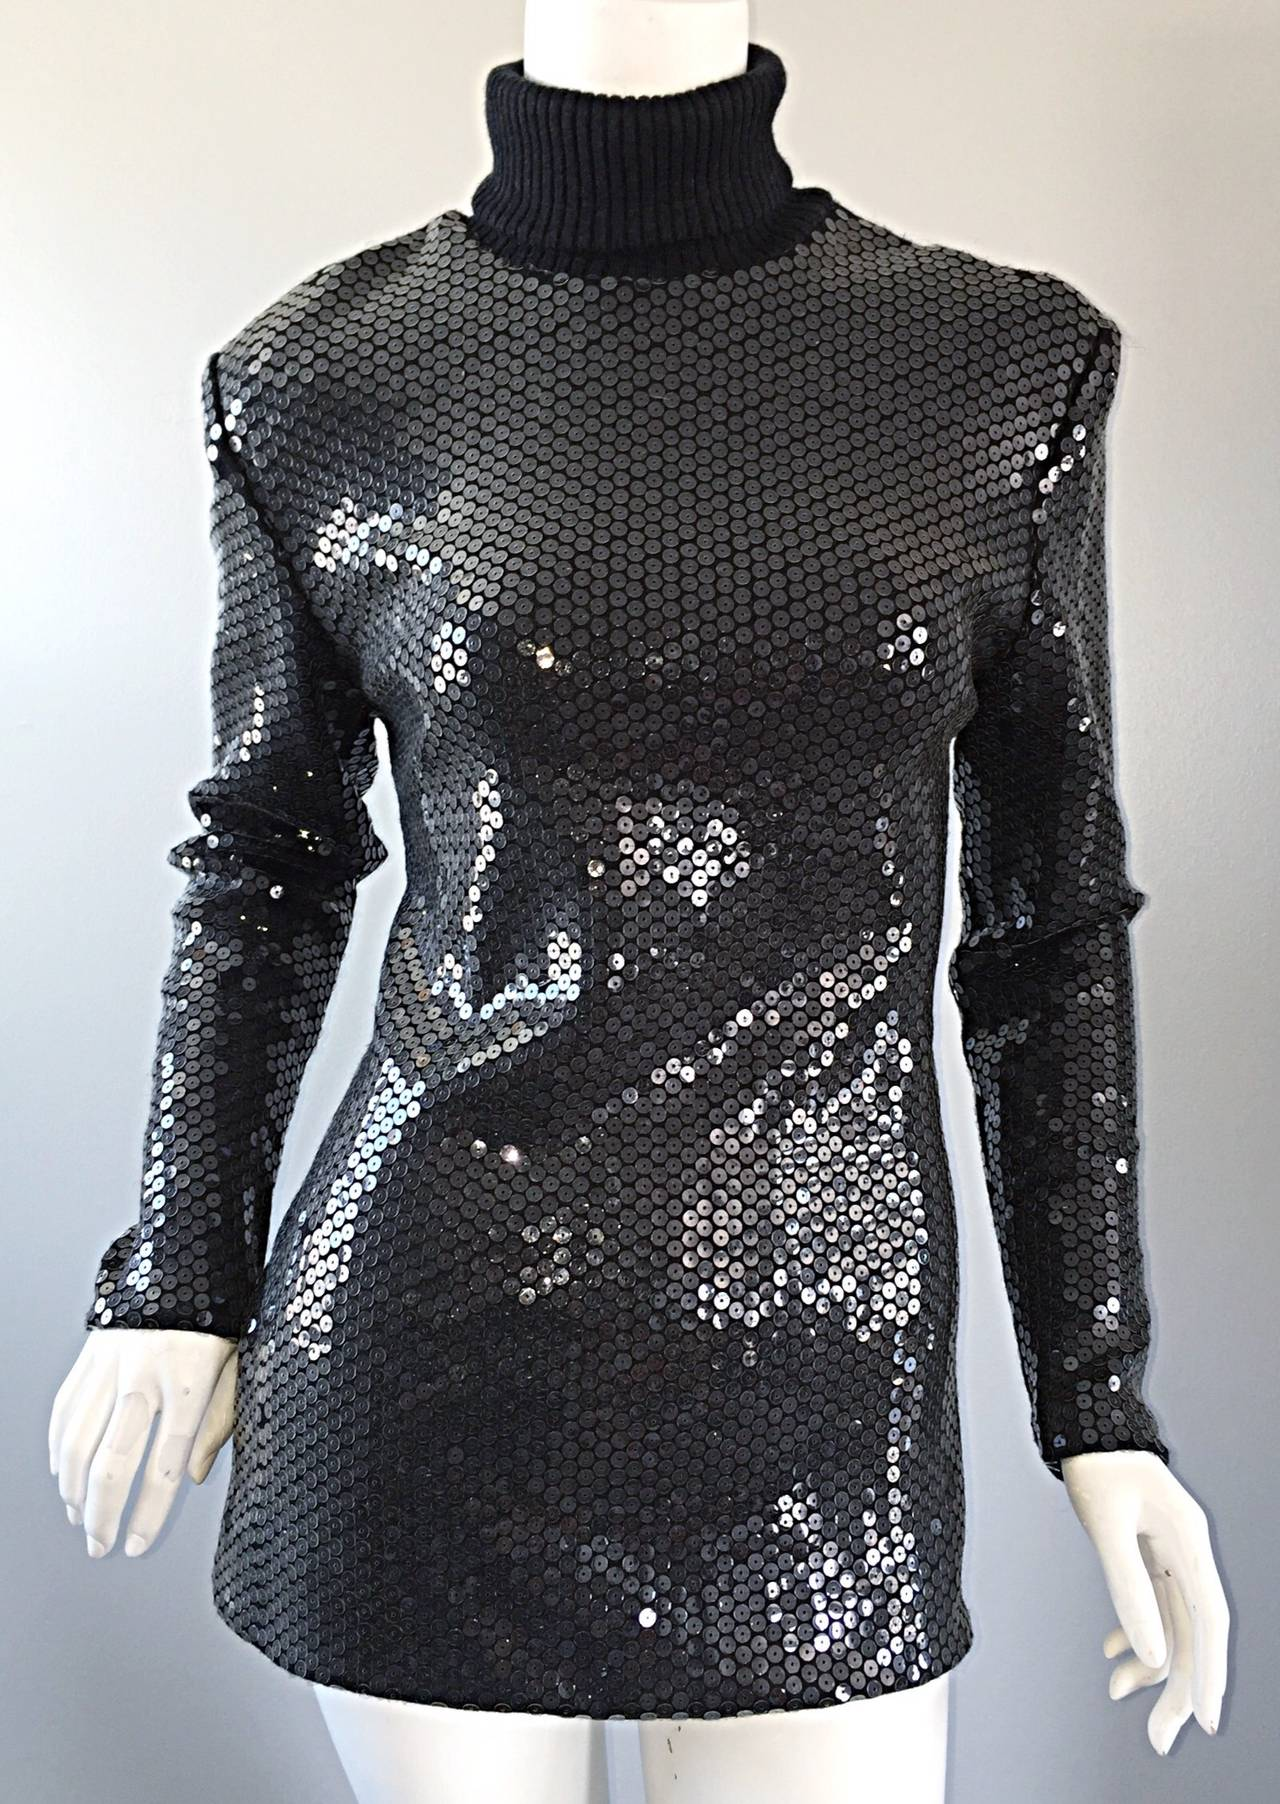 Rare Very Early Michael Kors Runway Sample Gray Sequins Turtleneck Sweater For Sale 3